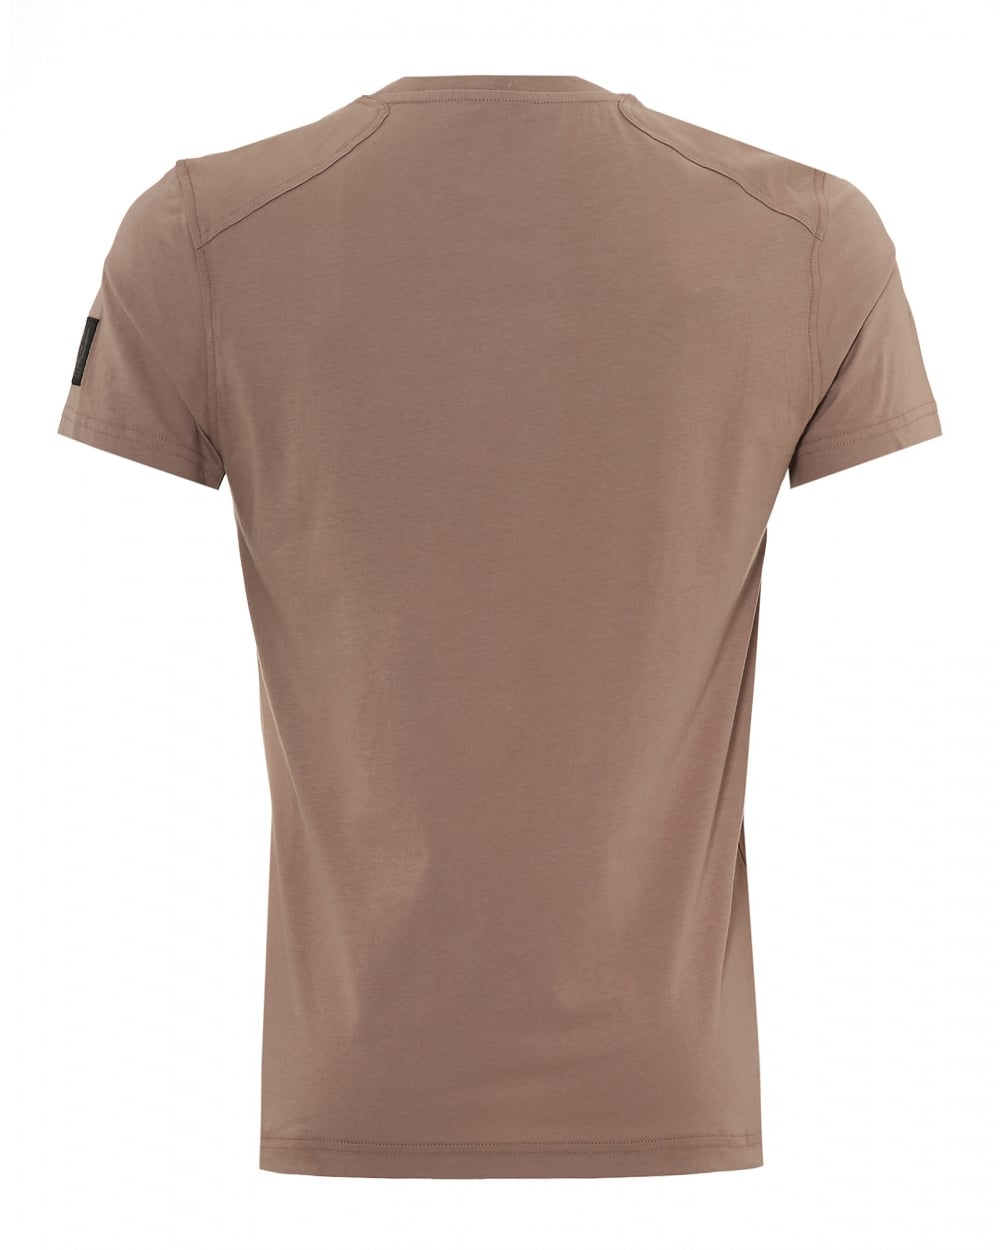 9b05f4fa5876 Belstaff Mens New Thom T-Shirt